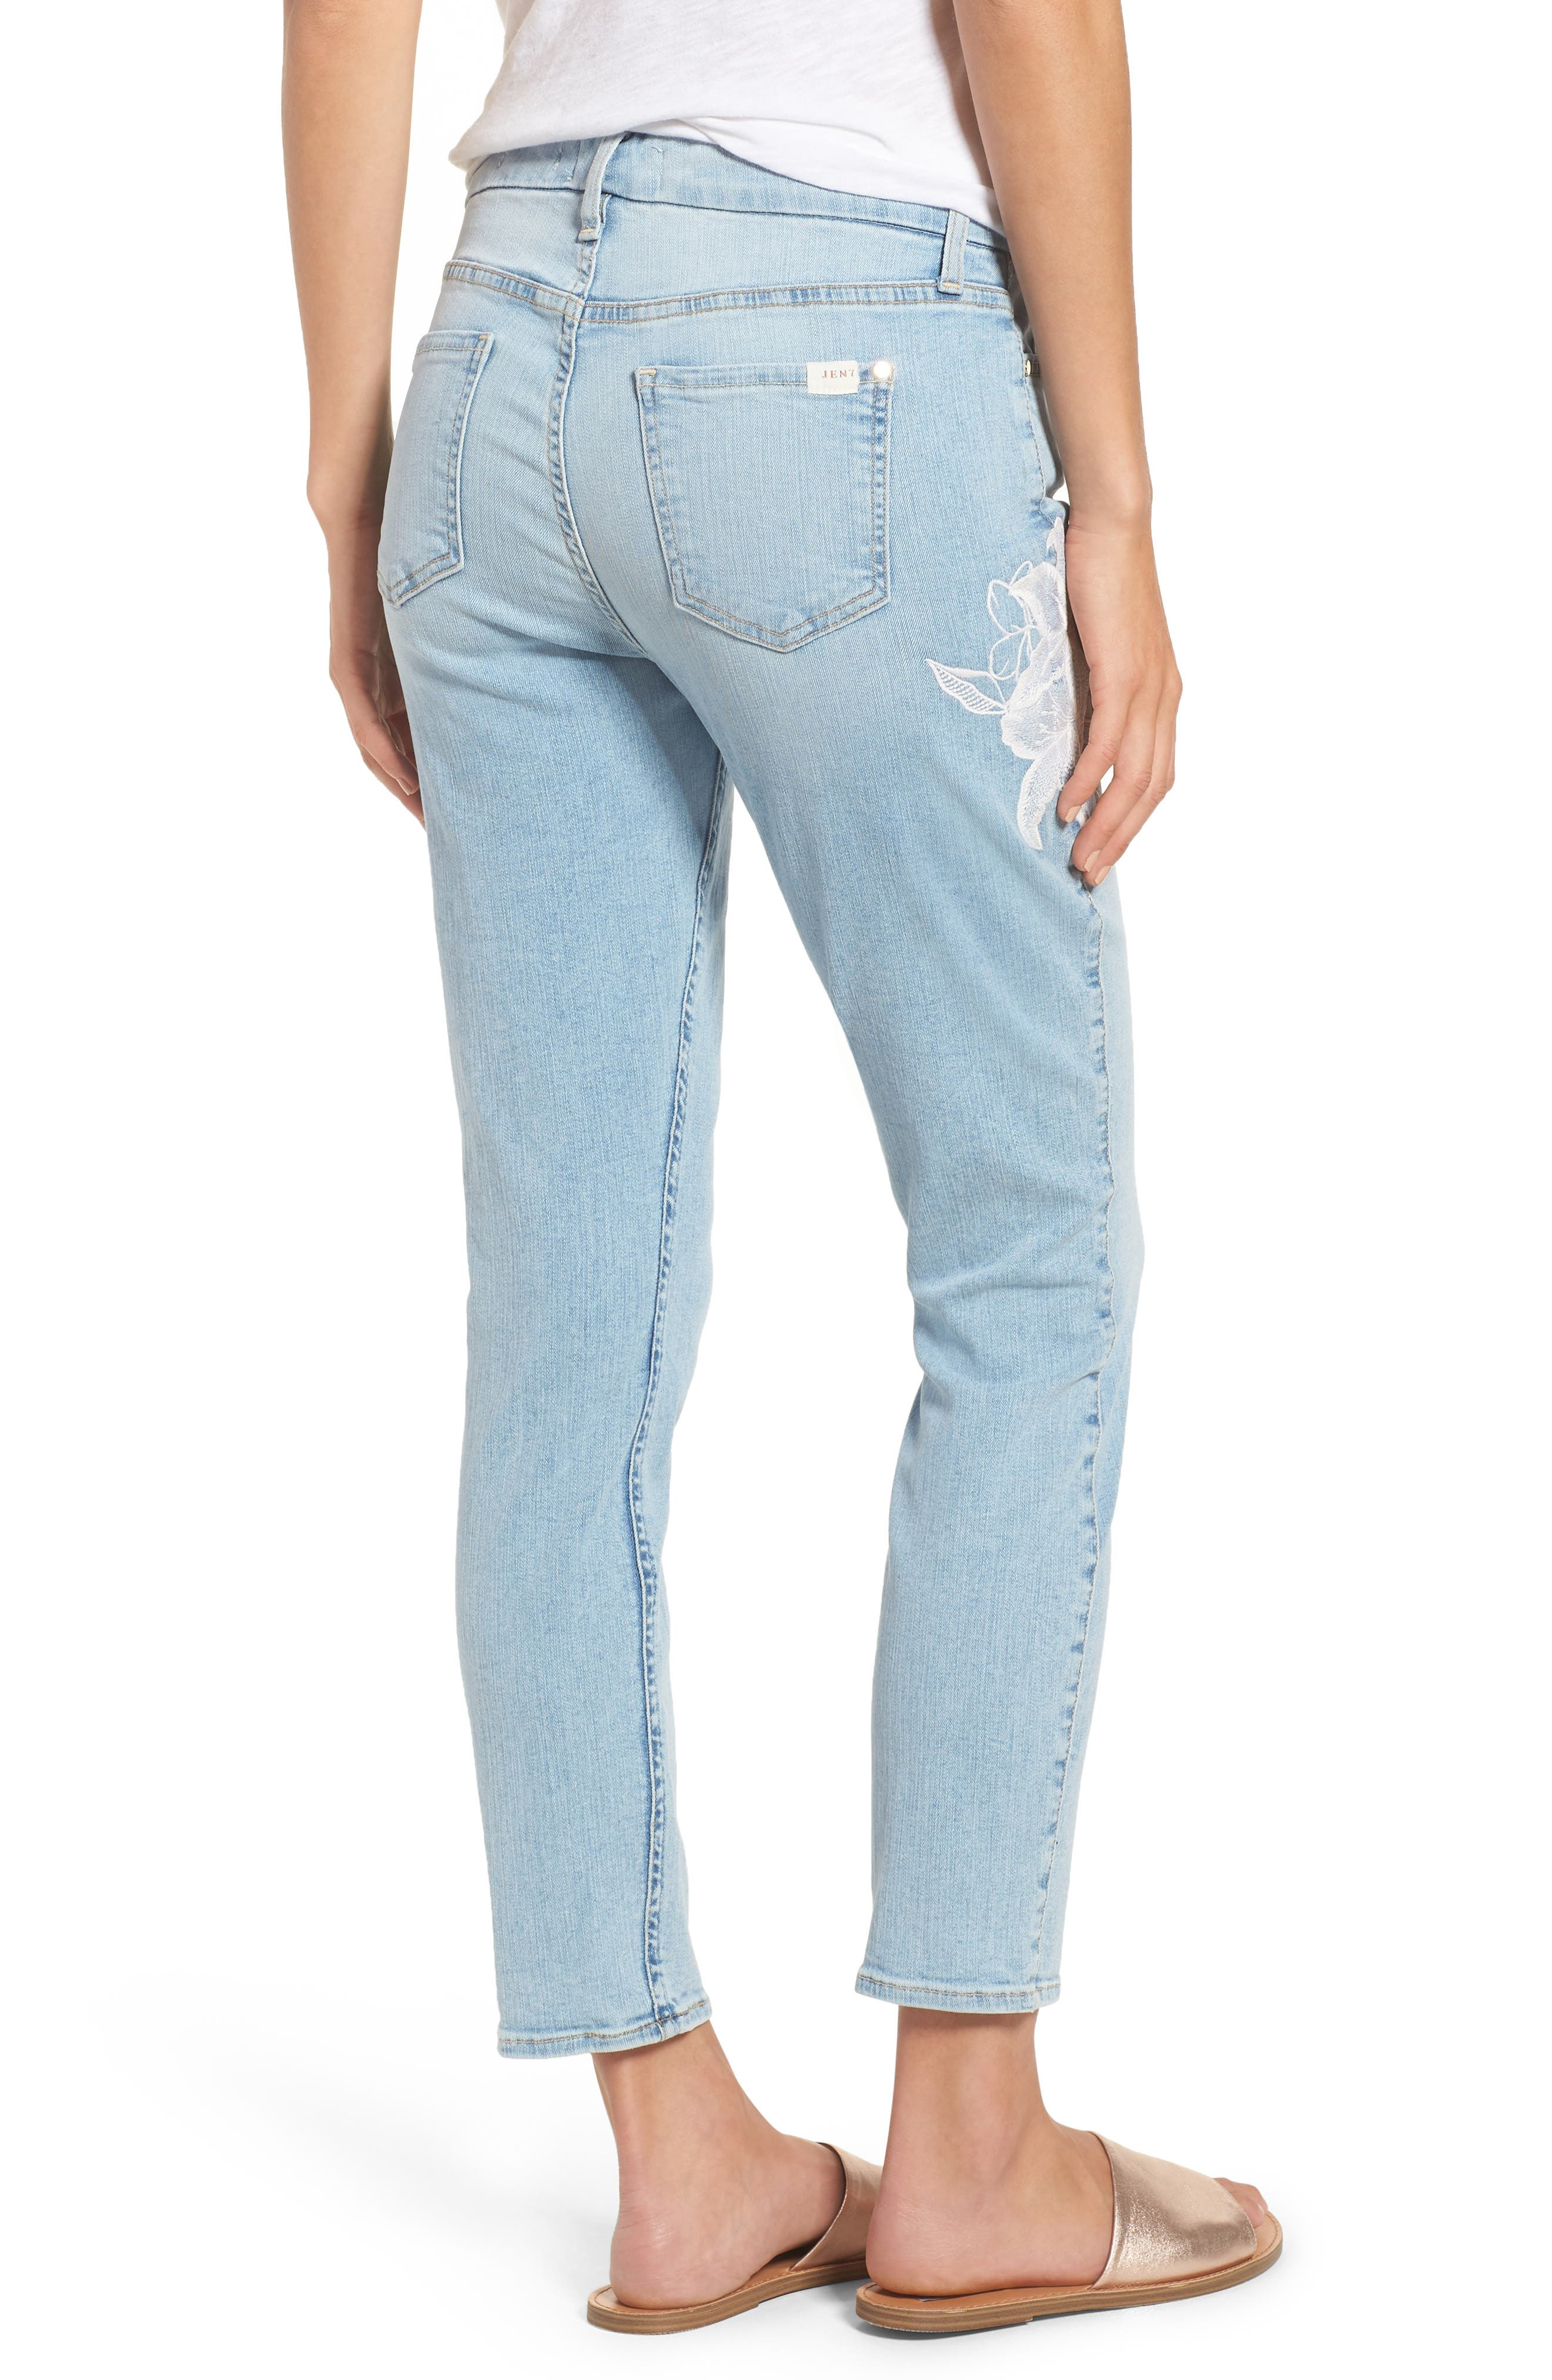 Jen 7 Embroidered Stretch Sklnny Ankle Jeans,                             Alternate thumbnail 2, color,                             Riche Touch Playa Vista